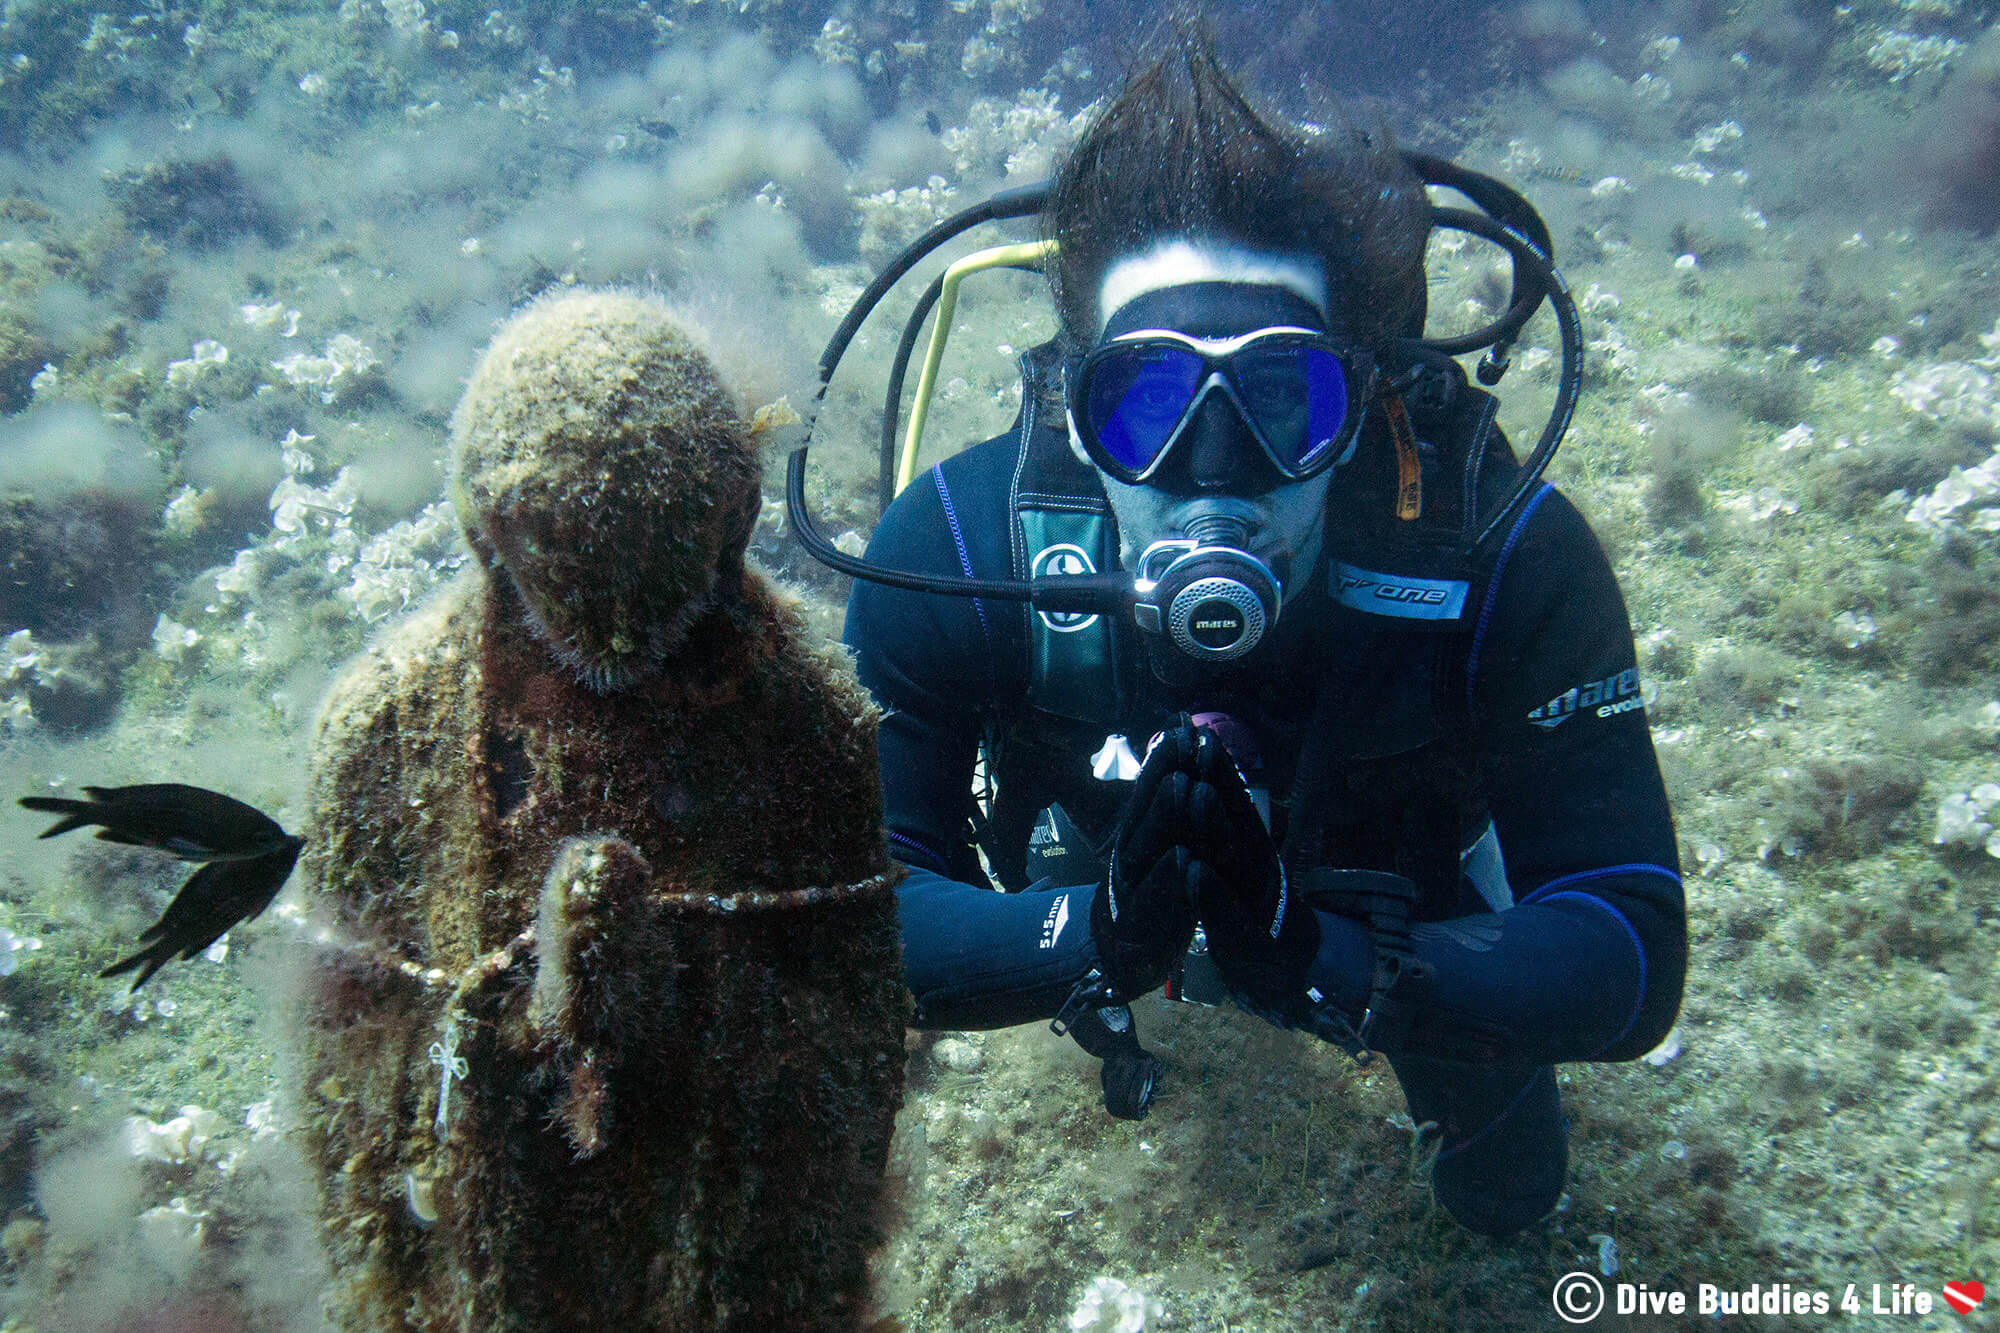 Joey And The Virgin Mary Statue Scuba Diving